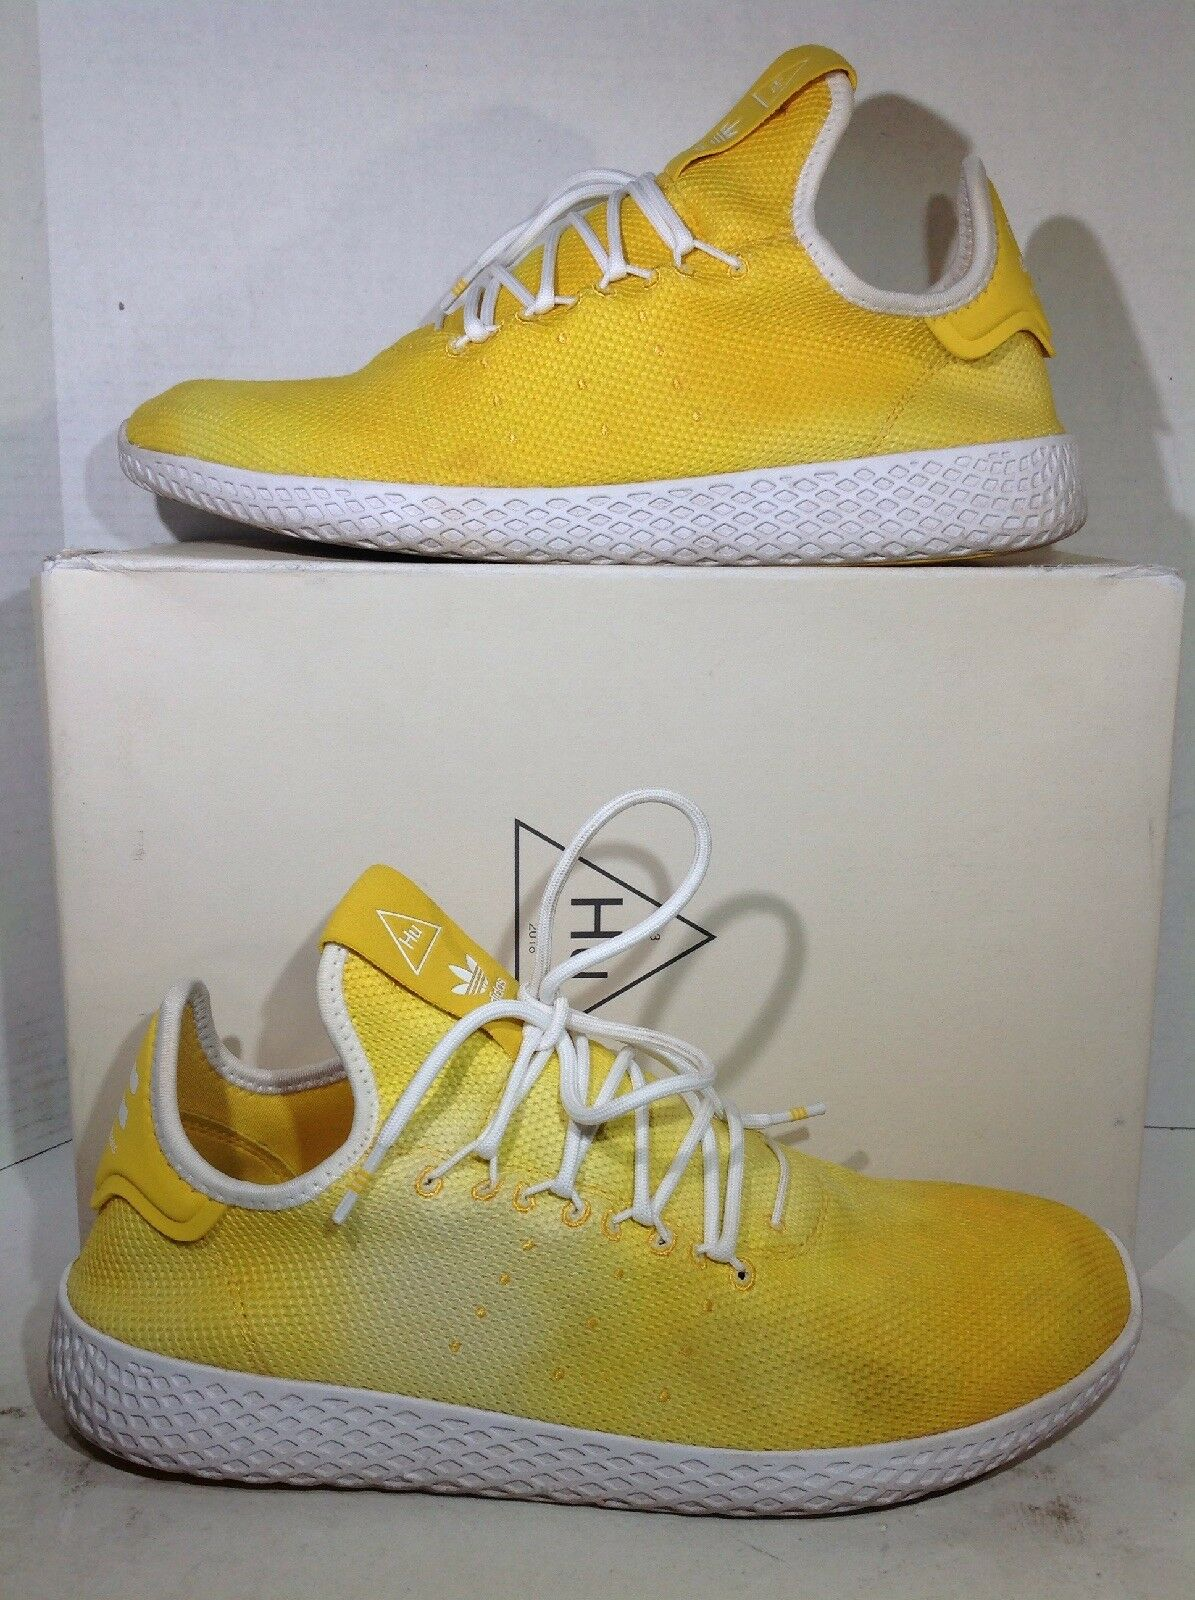 Adidas Mens Size 10.5 PW Hu Holi Yellow Athletic Tennis shoes Sneakers ZX-869